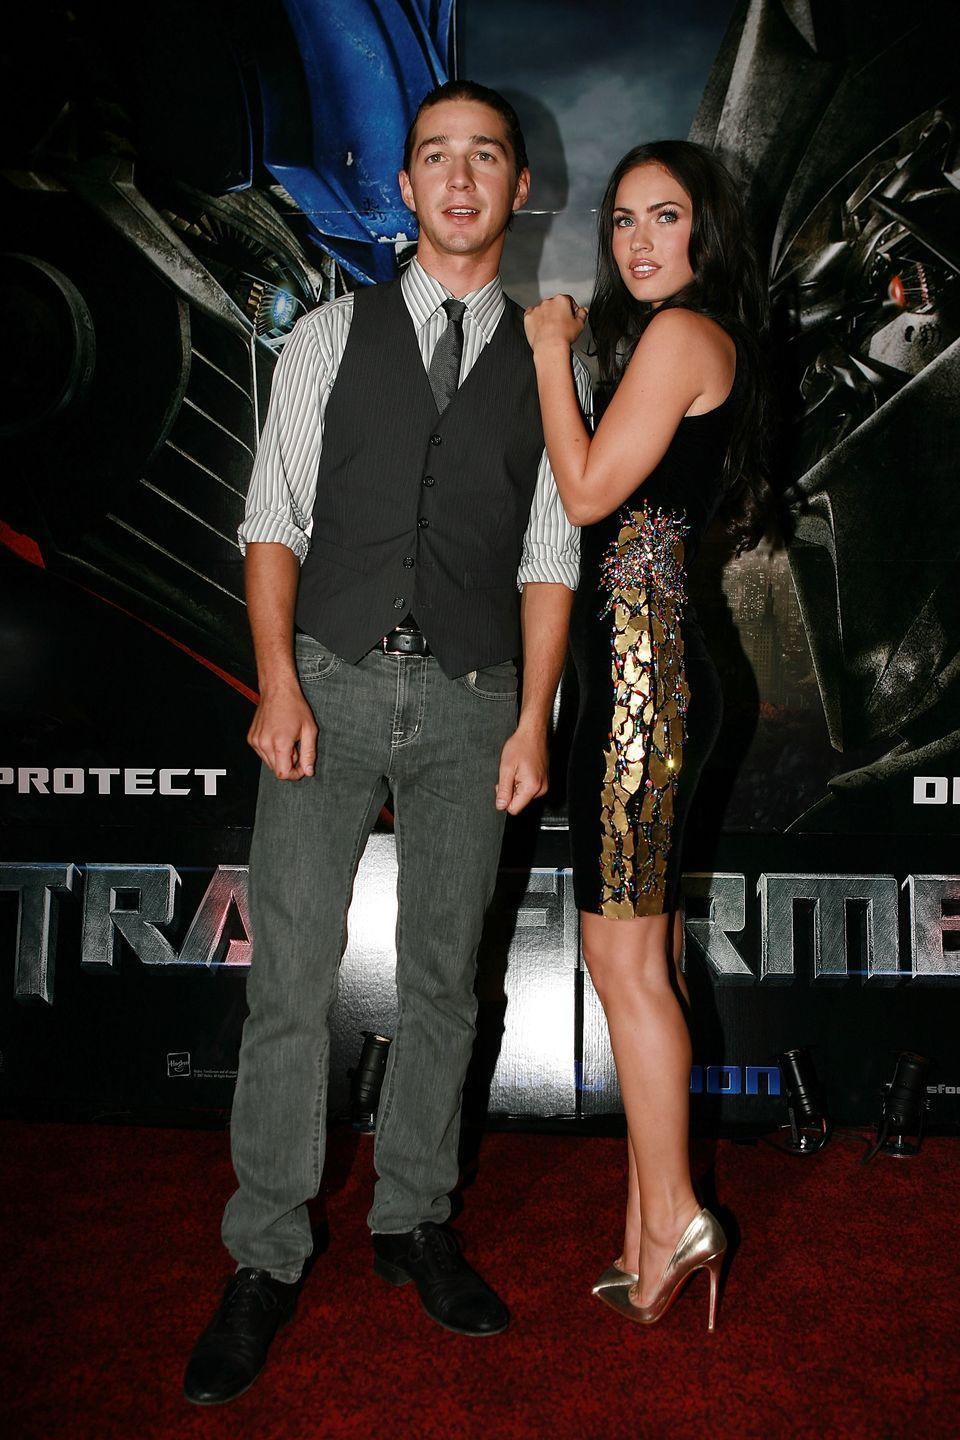 """<p>The pair met on the set of <em>Transformers, </em>and their on-screen chemistry sparked speculation that they were dating in real life. It's unclear whether or not the two were an item during their first or second film together—or if Fox was involved with now-husband Brian Austin Green at the time—but Fox confirmed on <em><a href=""""https://www.youtube.com/watch?v=XcAdzkprQyo"""" rel=""""nofollow noopener"""" target=""""_blank"""" data-ylk=""""slk:Watch What Happens Live with Andy Cohen"""" class=""""link rapid-noclick-resp"""">Watch What Happens Live with Andy Cohen</a> </em>that they <em>did </em>in fact date.</p>"""